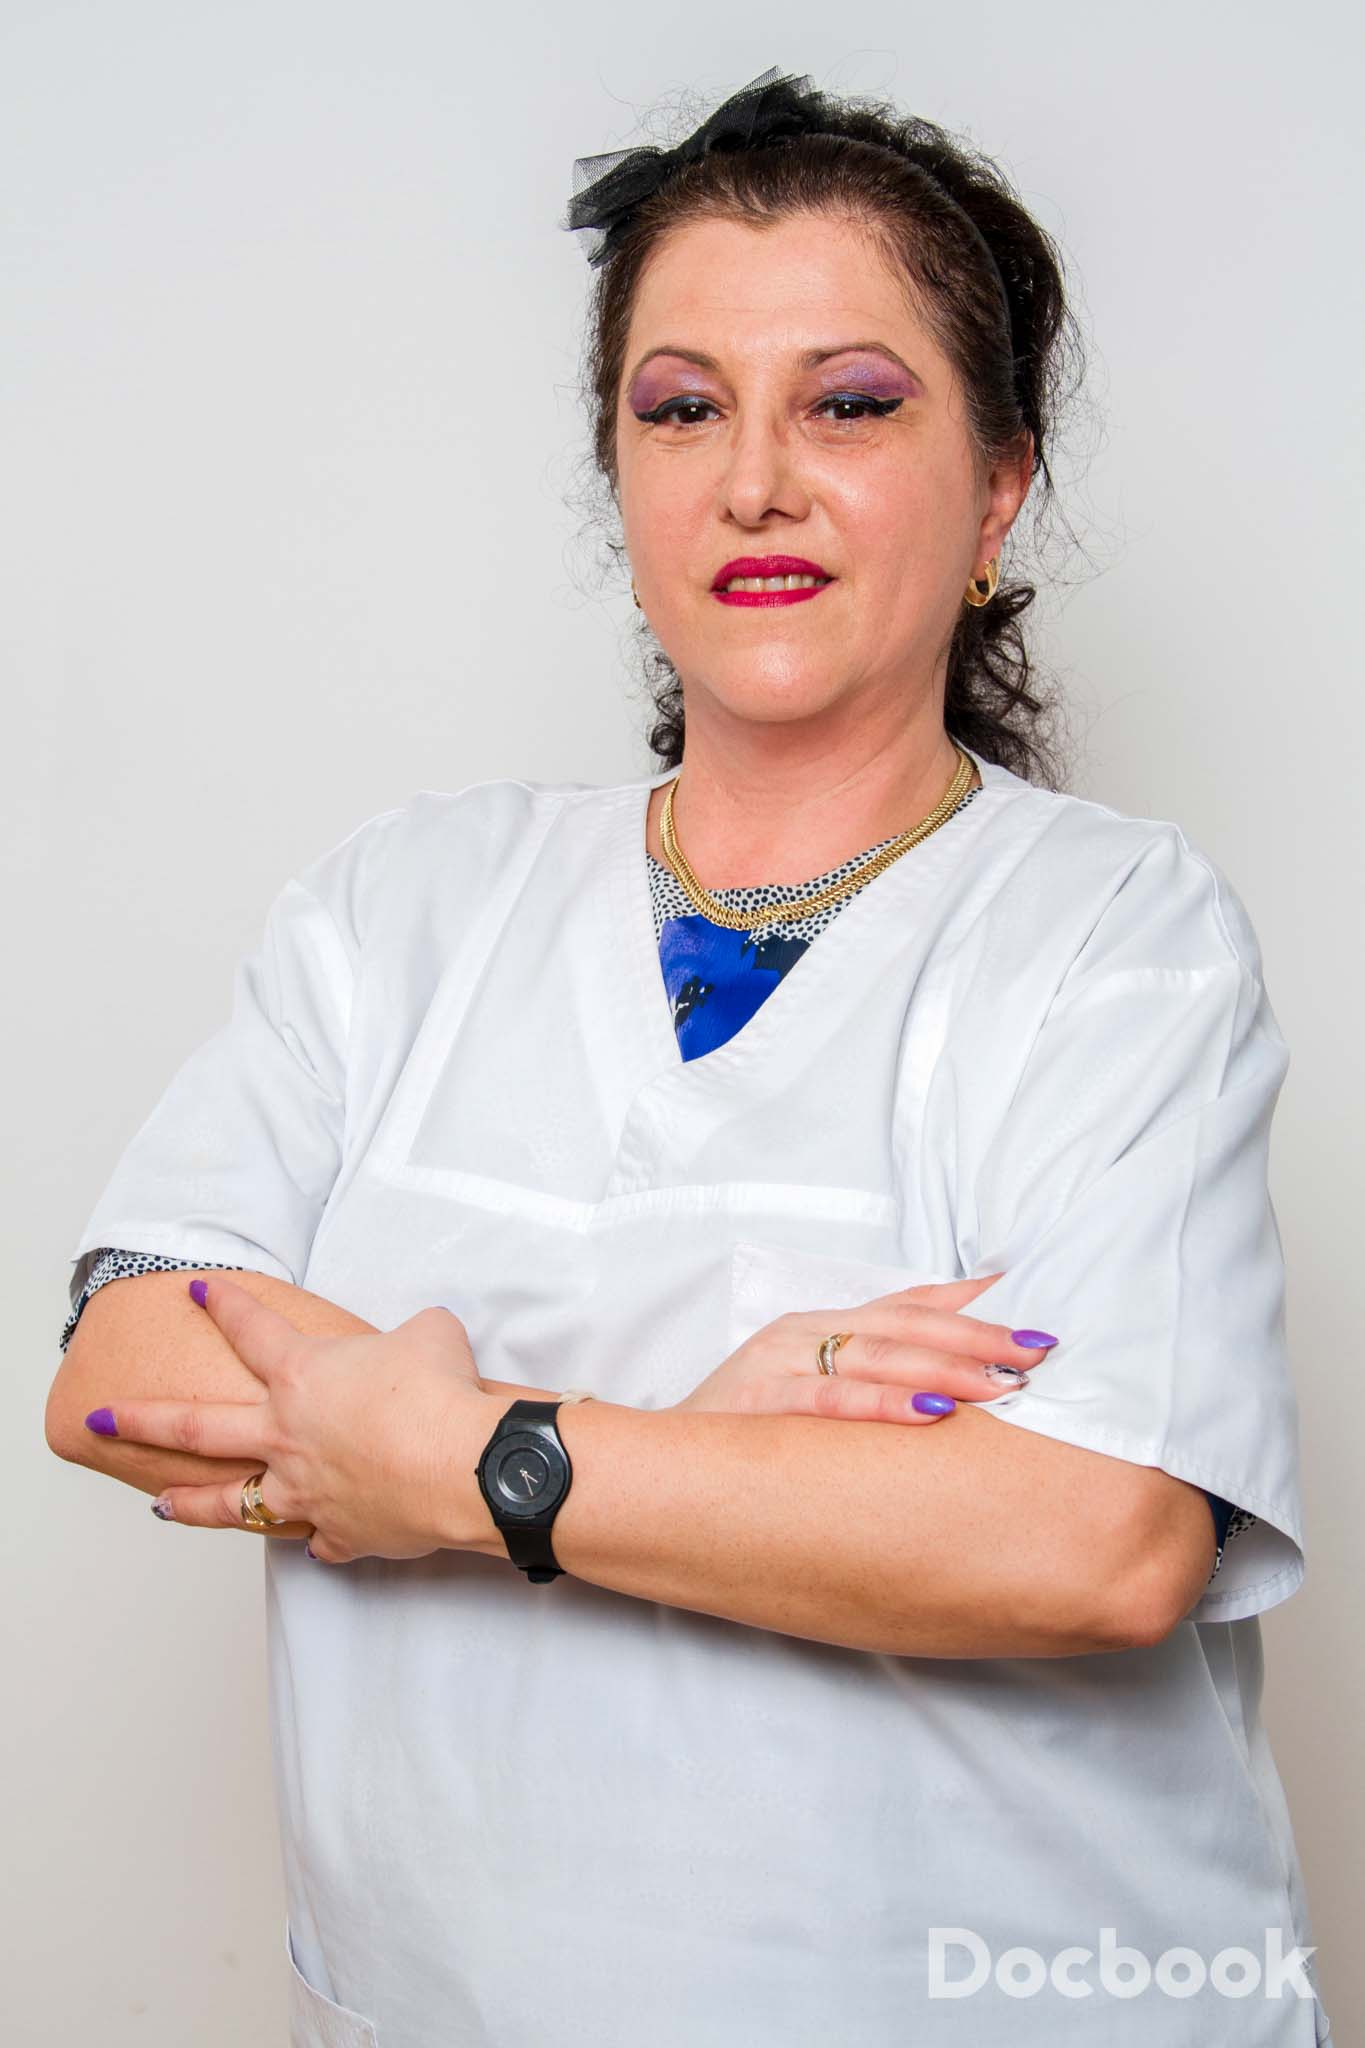 Dr. Anca Lungeanu